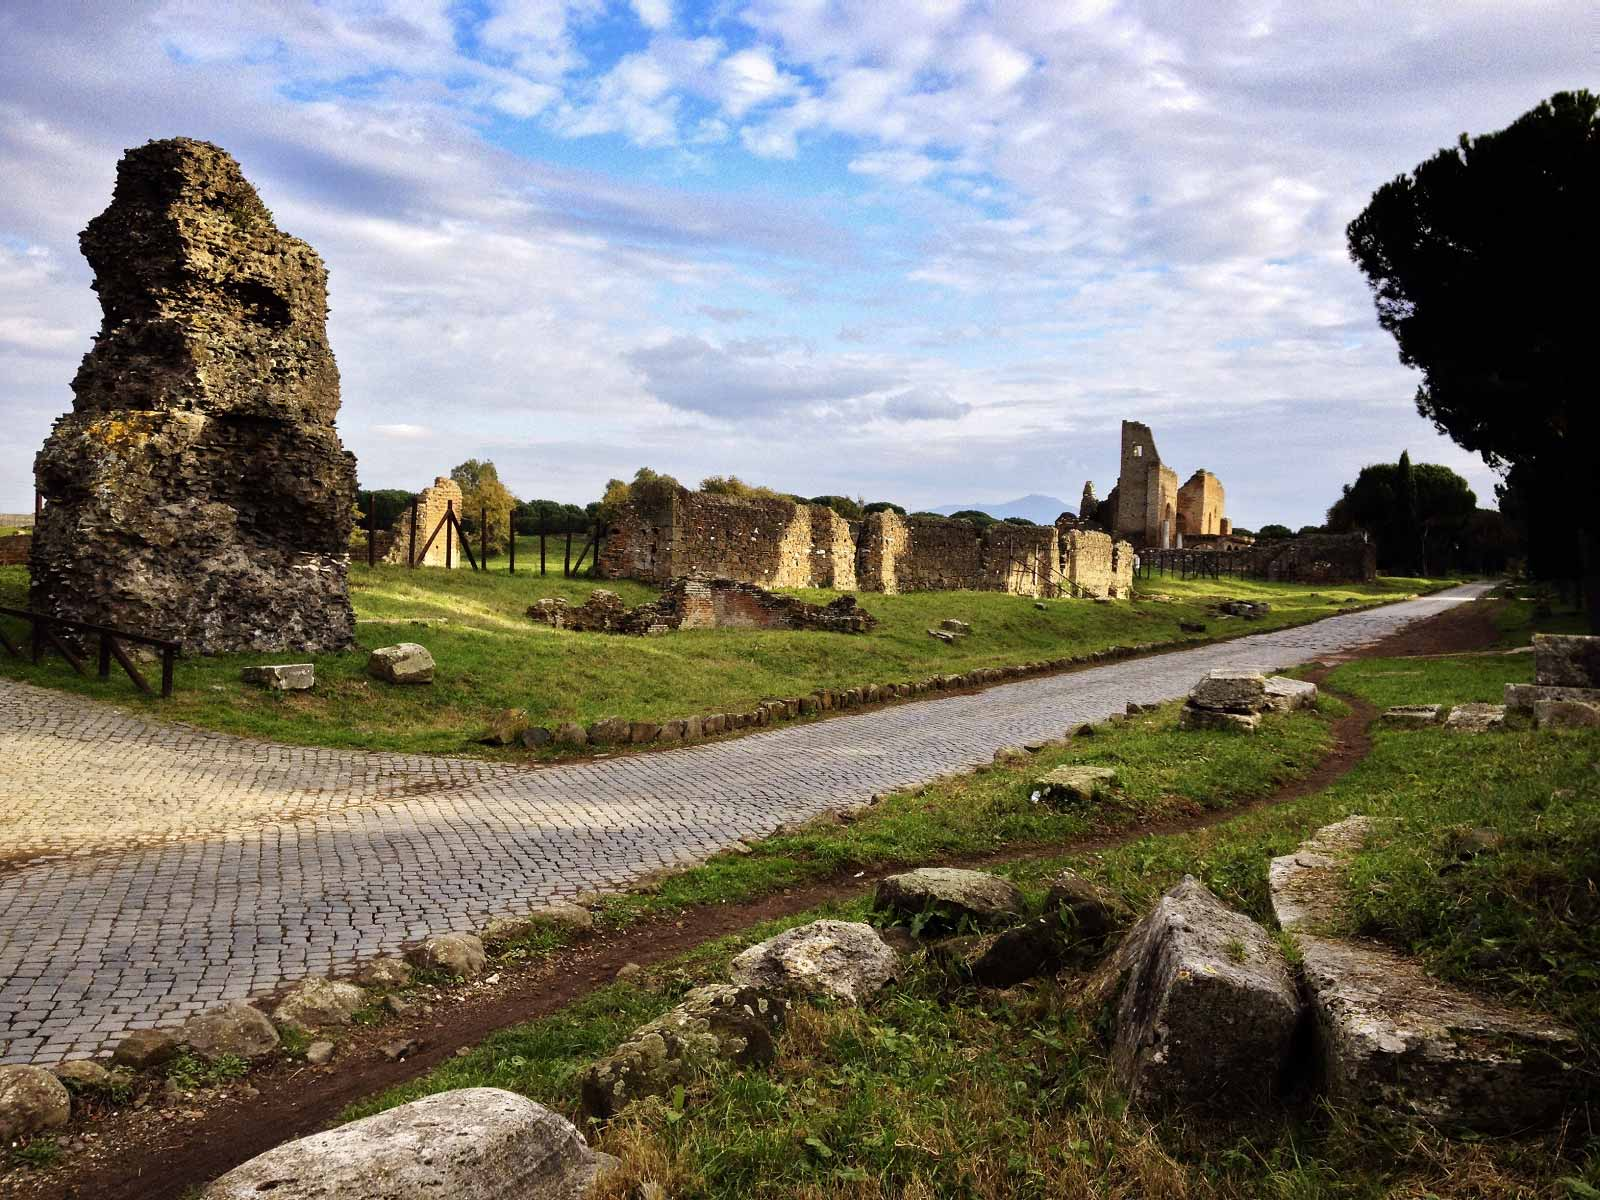 Undiscovered Rome - Tour of the Catacombs, Appian Way, and the Roman Aqueduct